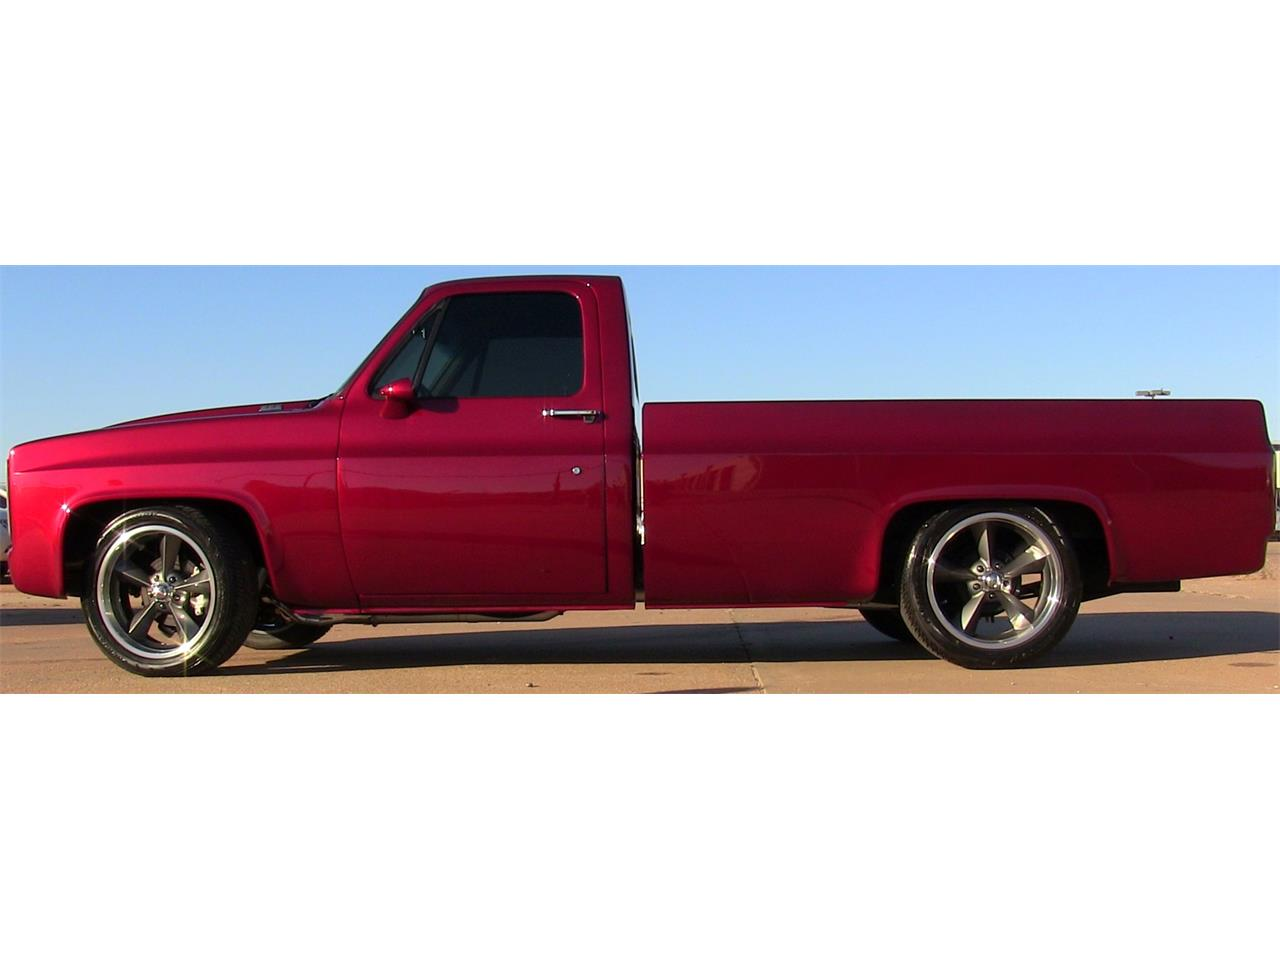 Large Picture of '86 Chevrolet C/K 10 located in Enid Oklahoma - $20,000.00 Offered by a Private Seller - KXOM